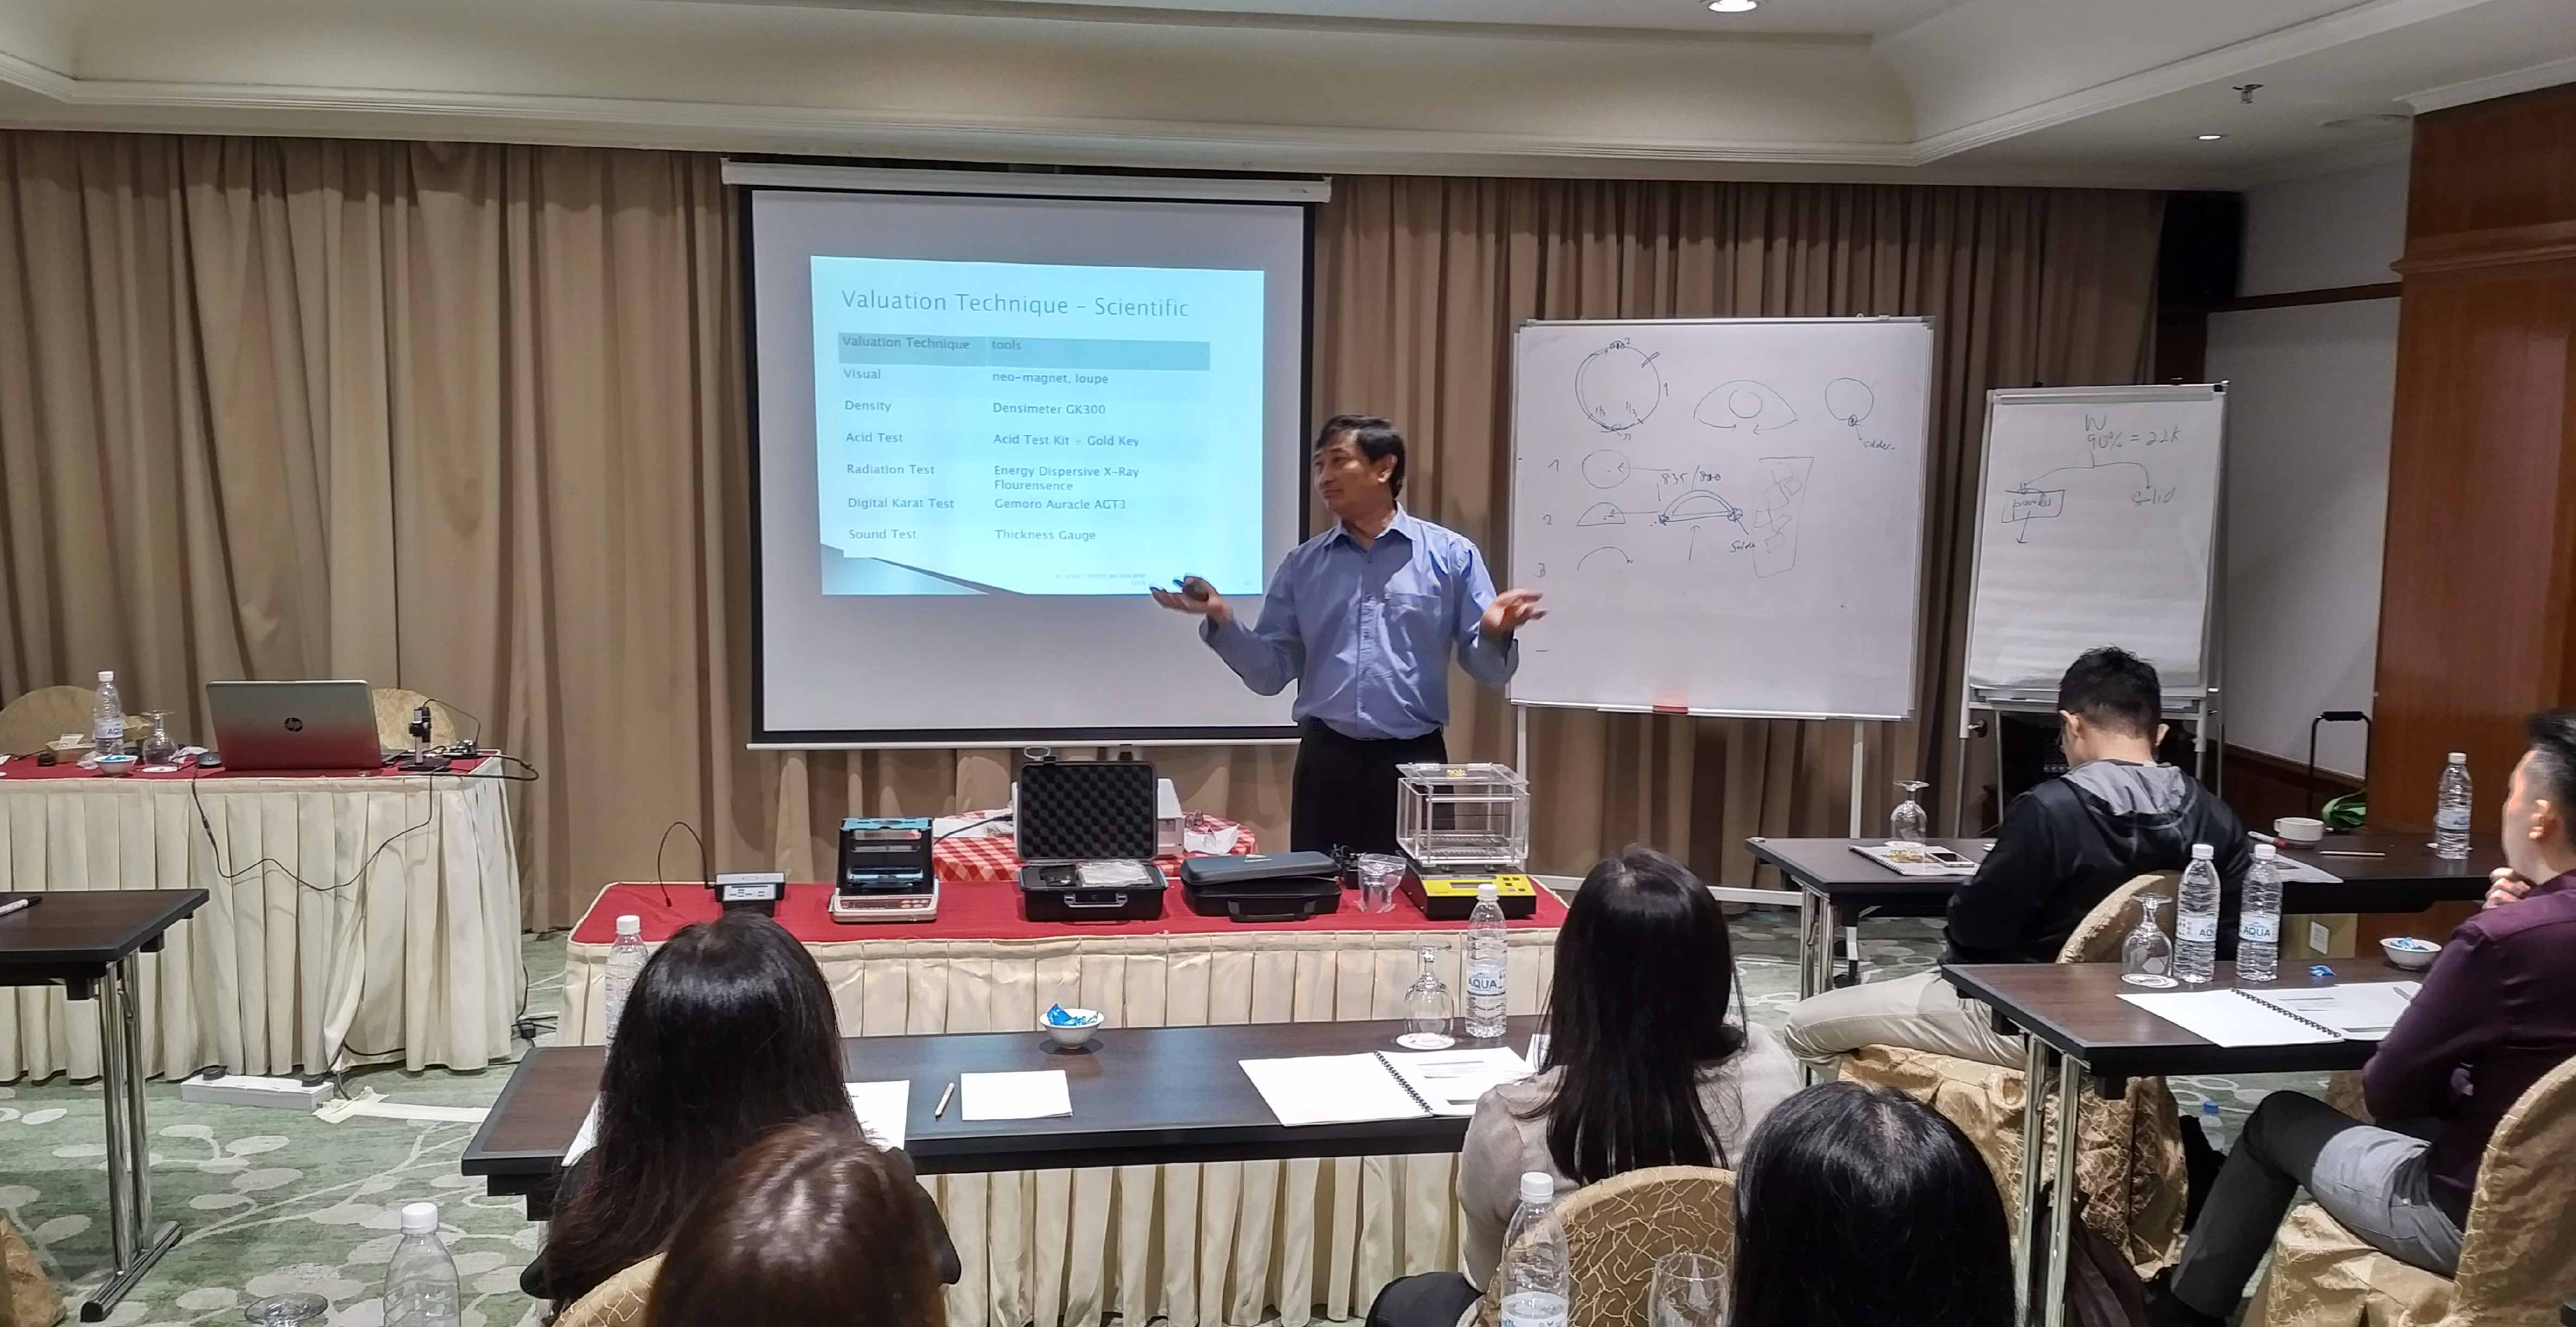 Validation of Precious Metal Authenticity Workshop【贵金属鉴定培训】